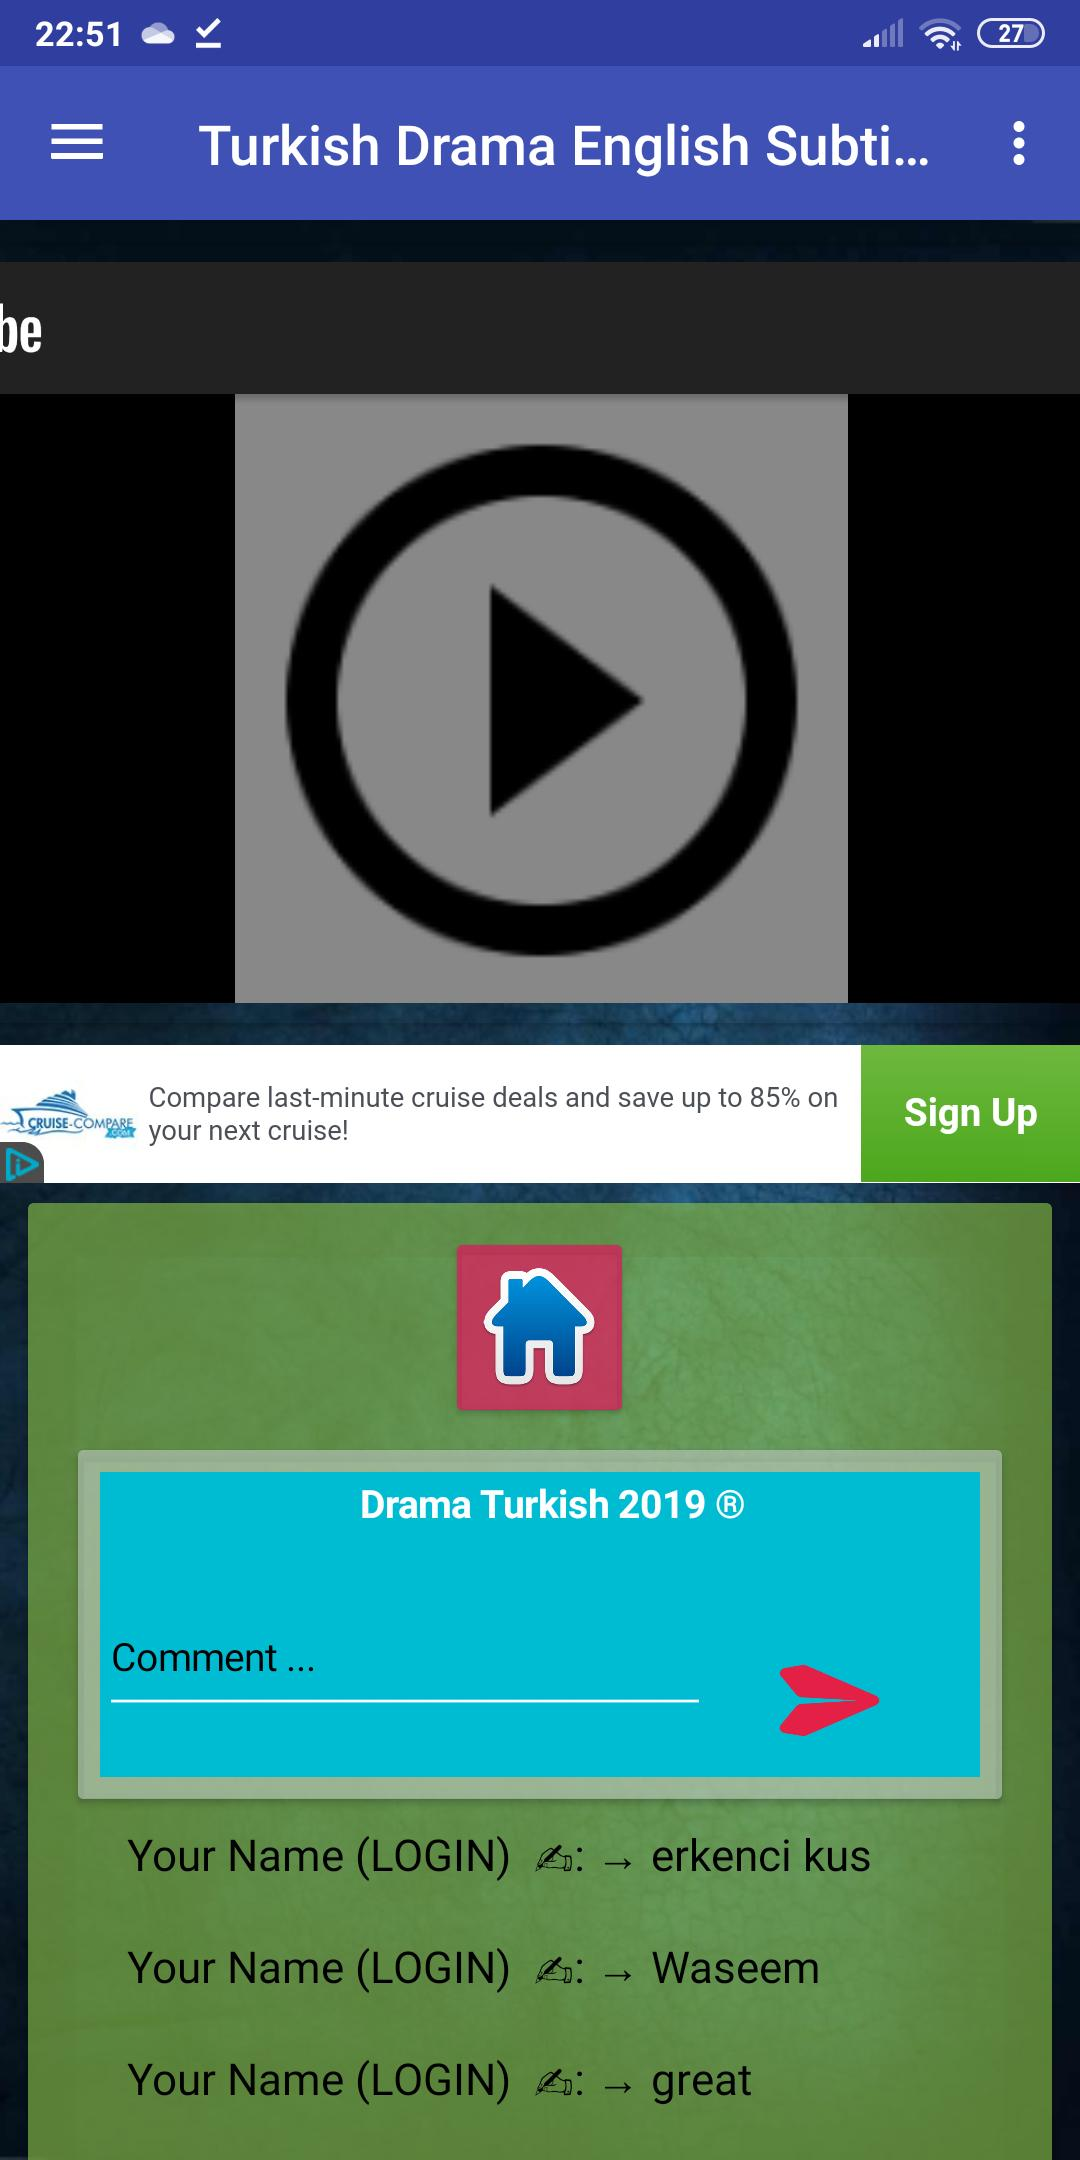 Turkish Dramas 2019 ©️ for Android - APK Download